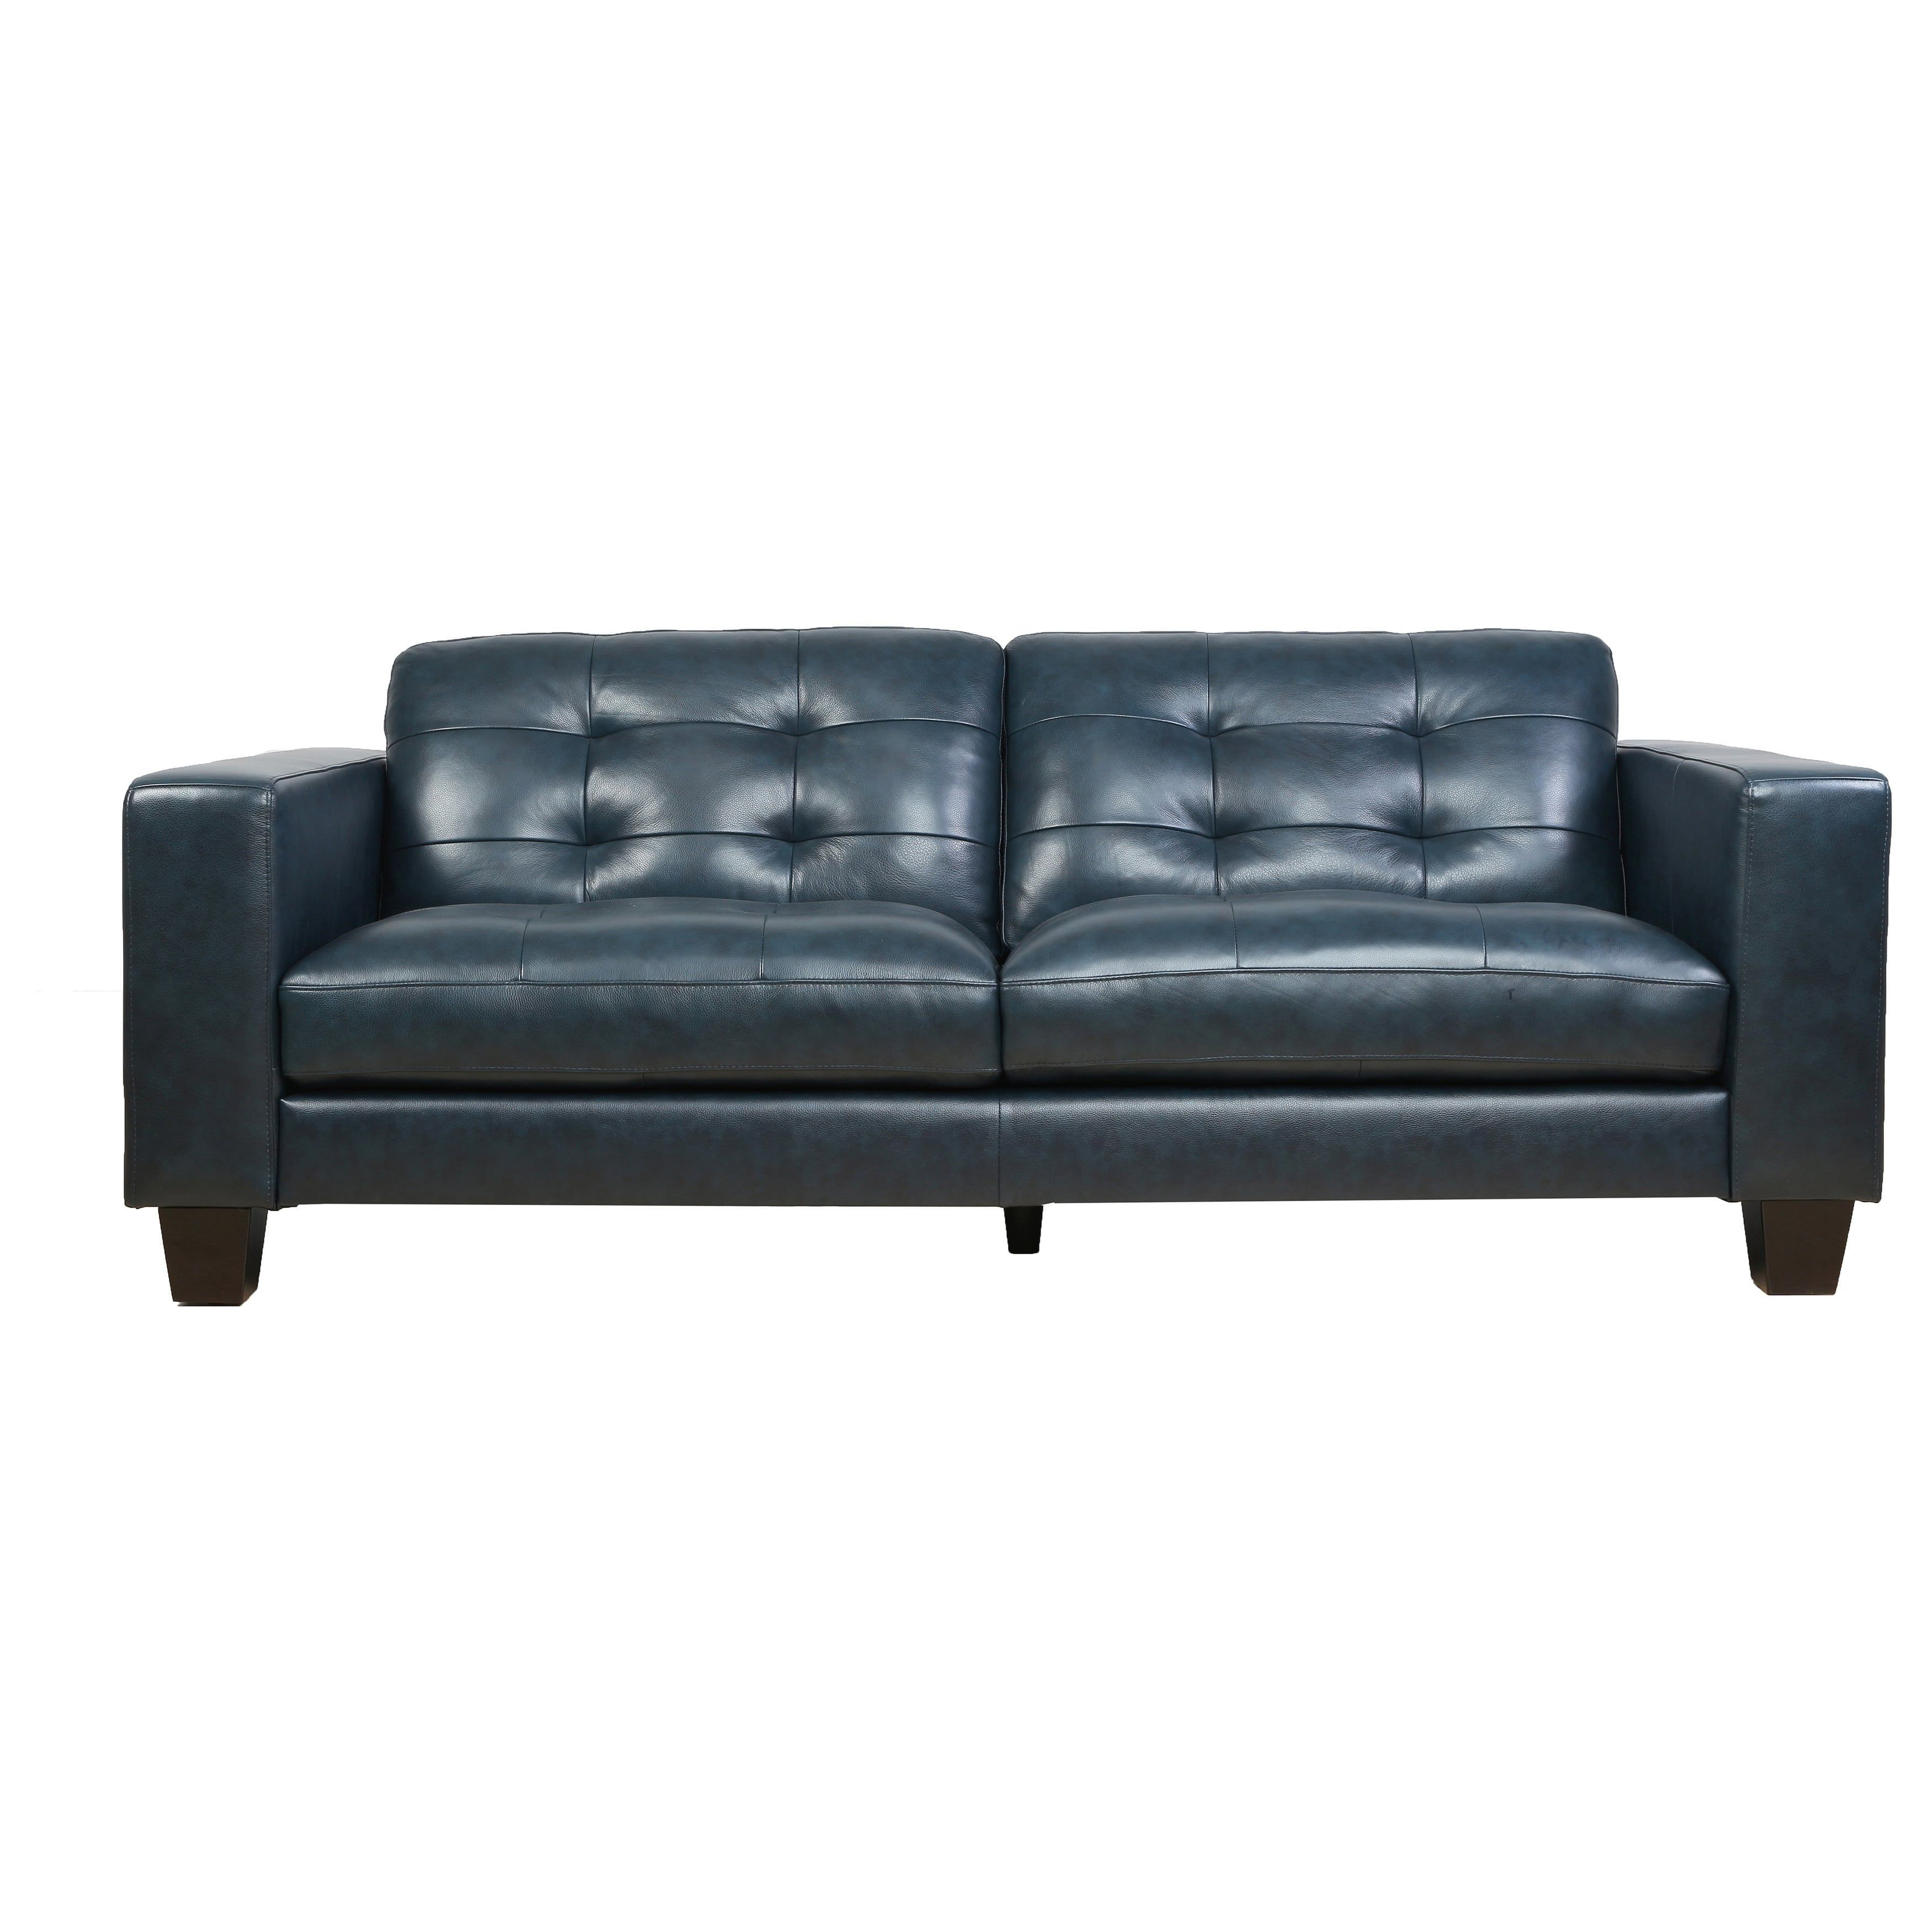 furniture unique loveseats leather best set sofa navy blue loveseat of and luxury